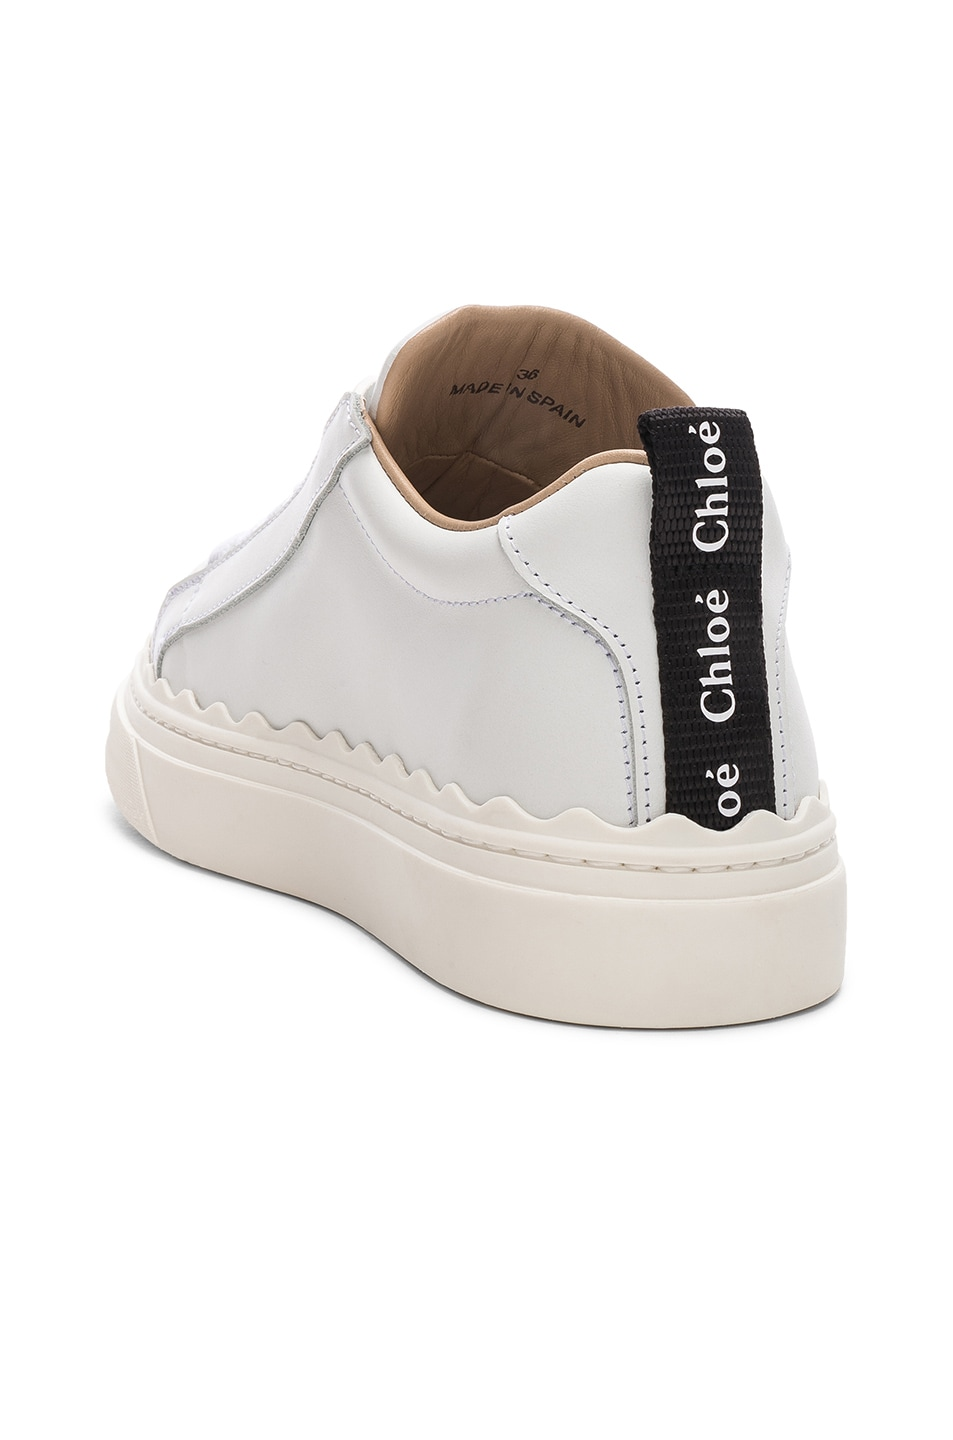 Image 3 of Chloe Low Top Sneakers in White